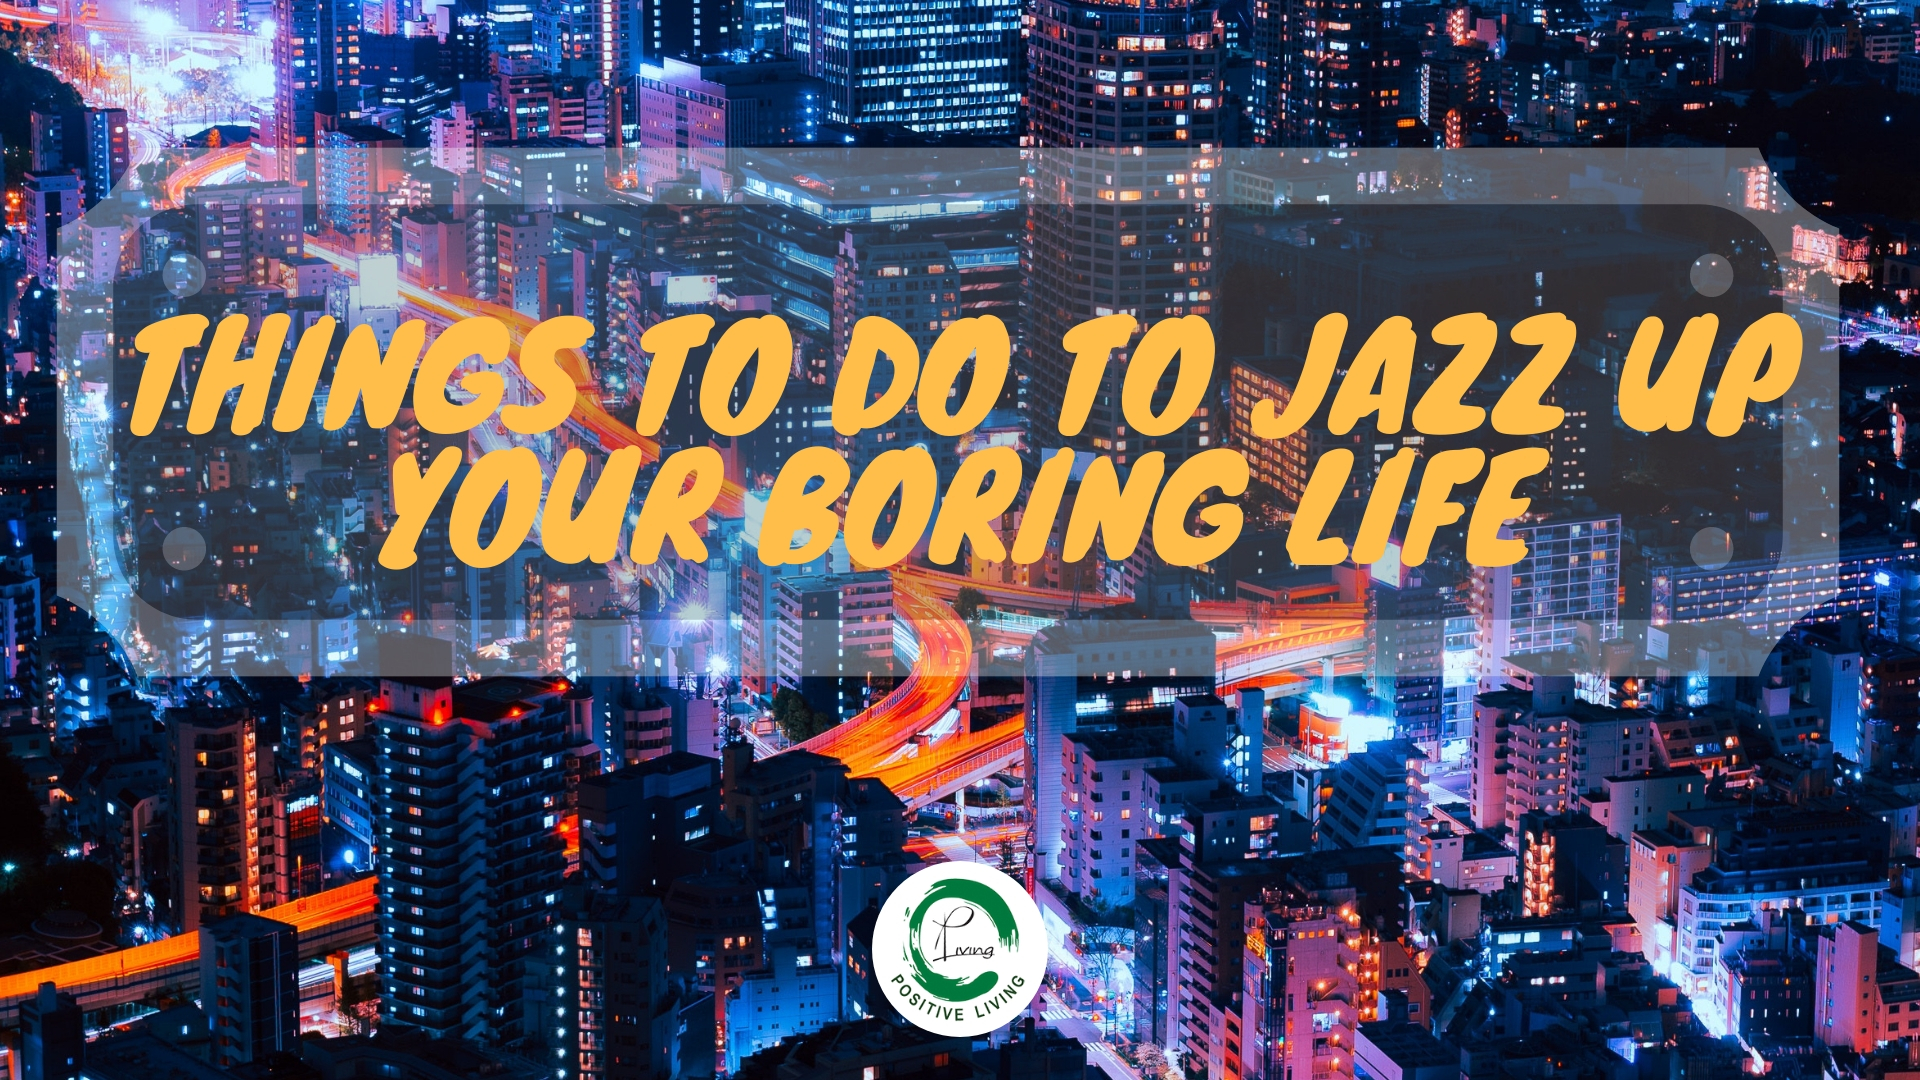 Things To Do To Jazz Up Your Boring Life